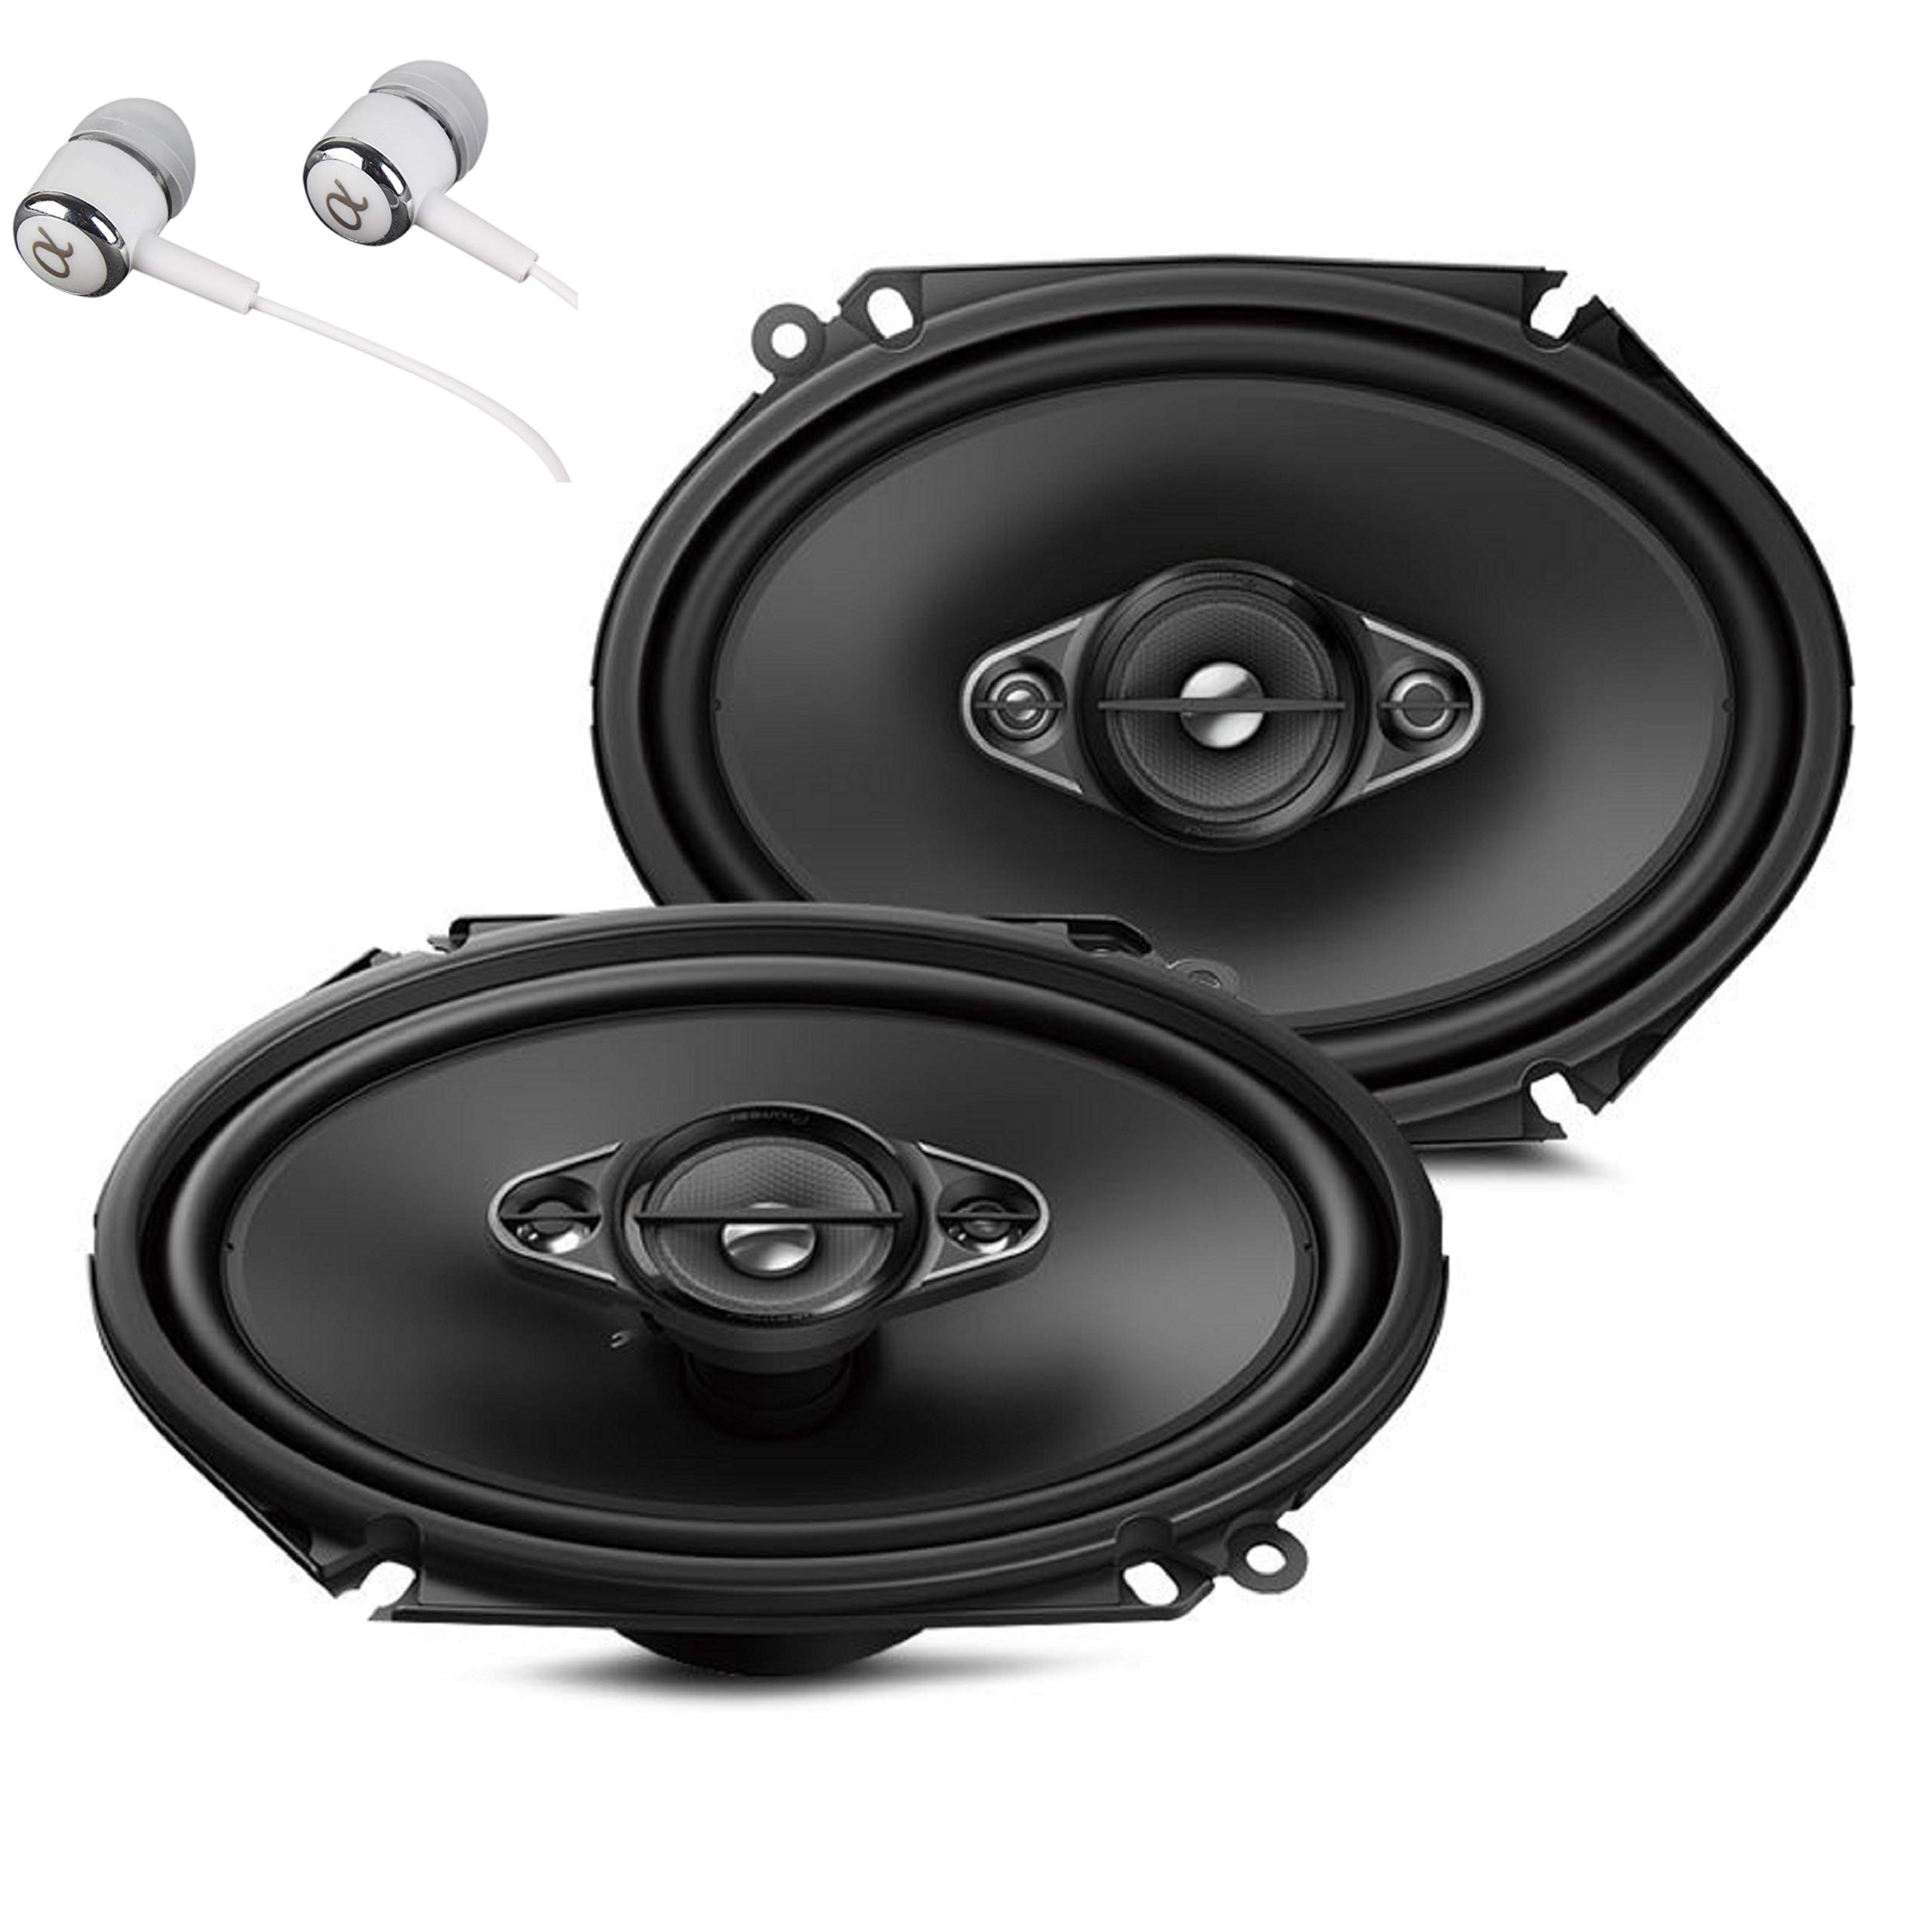 Pioneer TS-A6880F 6'' x 8'' 350 Watts Max Power A-Series 4-Way Car Audio Coaxial Speakers Pair with Fiber Cone Midrange / FREE ALPHASONIK EARBUDS by PIONEER